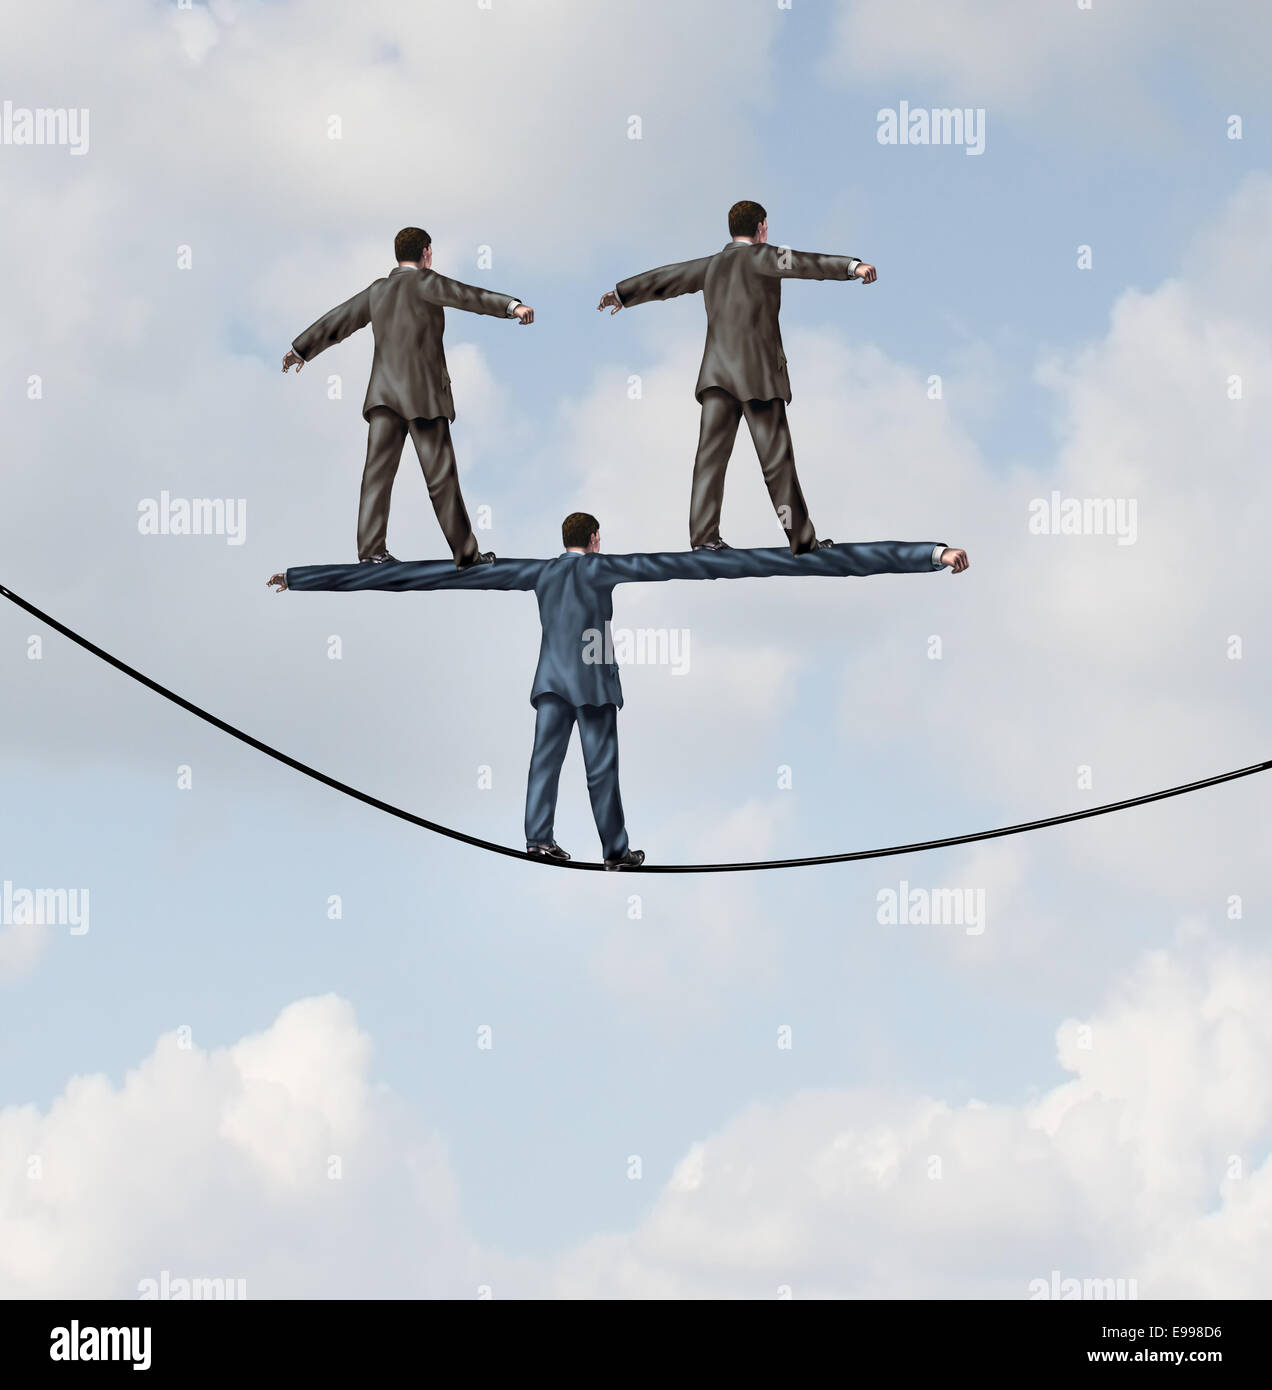 Business people manager concept as a businessman walking on a tight rope with two other businesspeople standing - Stock Image